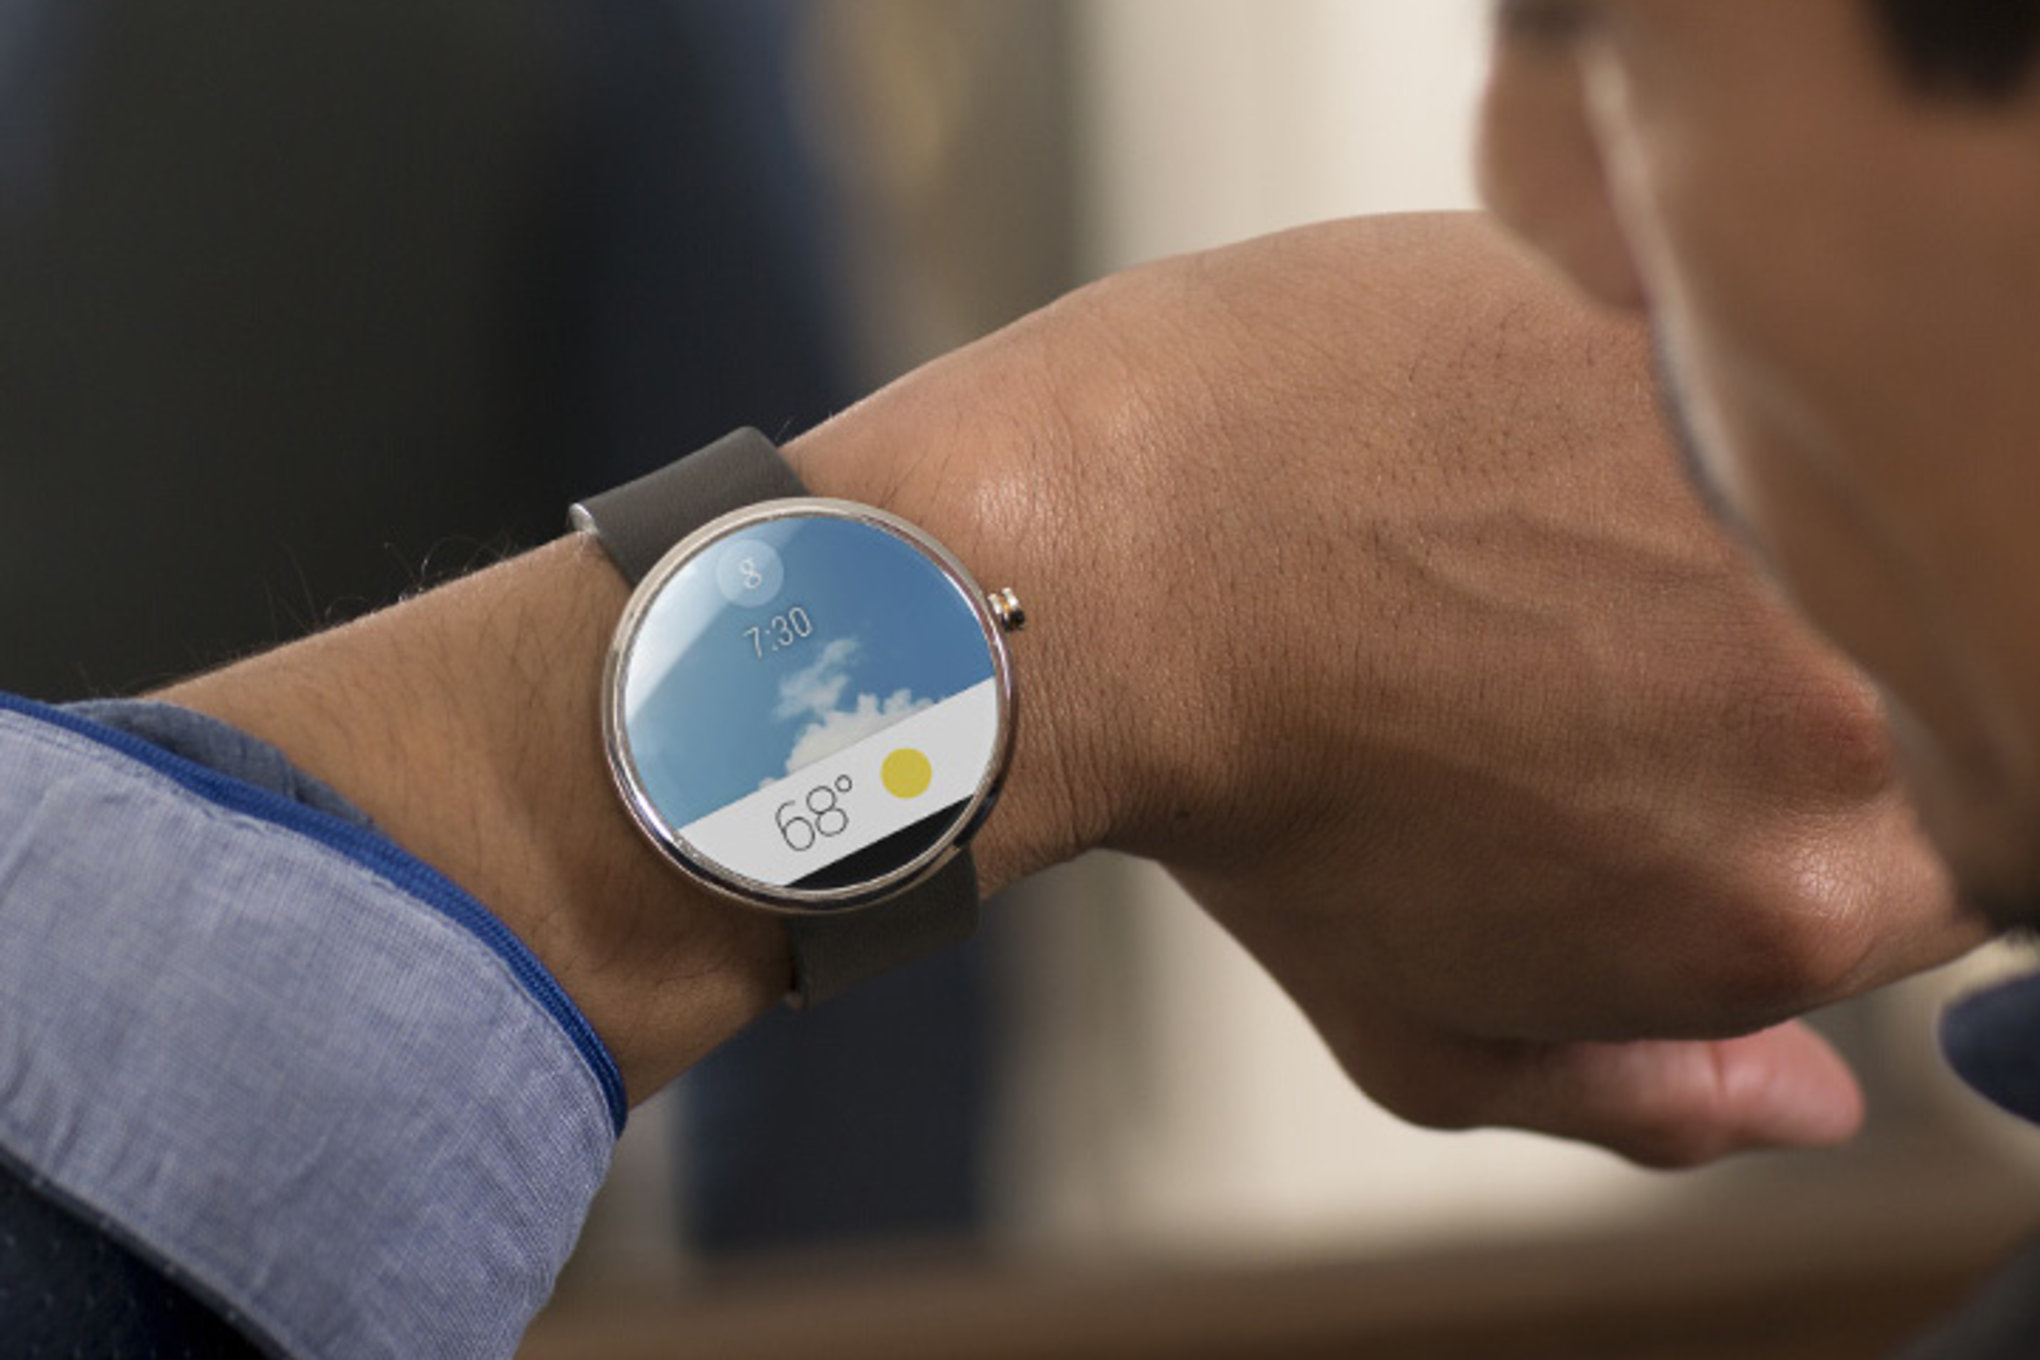 By 2016, almost half of wristworn devices will be smartwatches